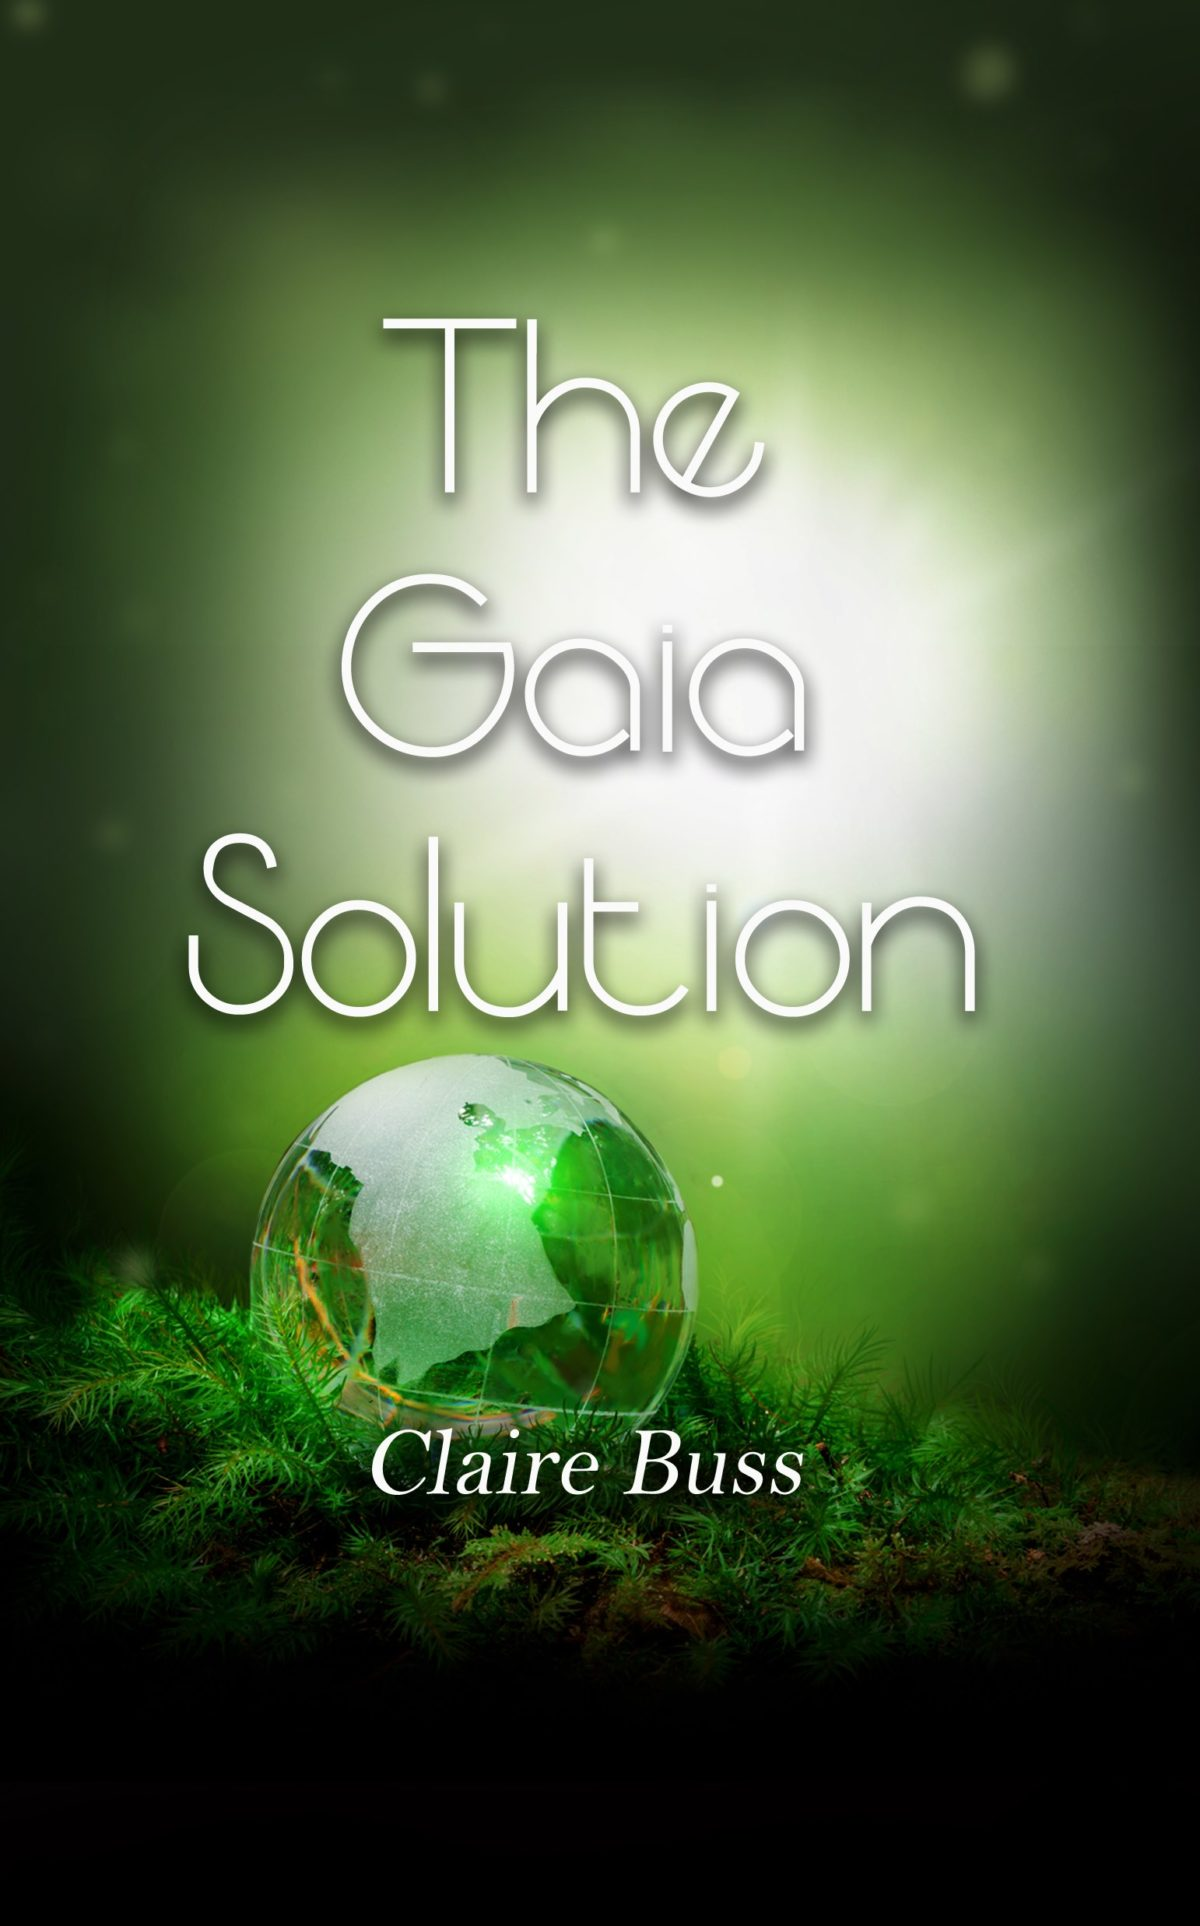 Claire Buss' The Gaia Solution